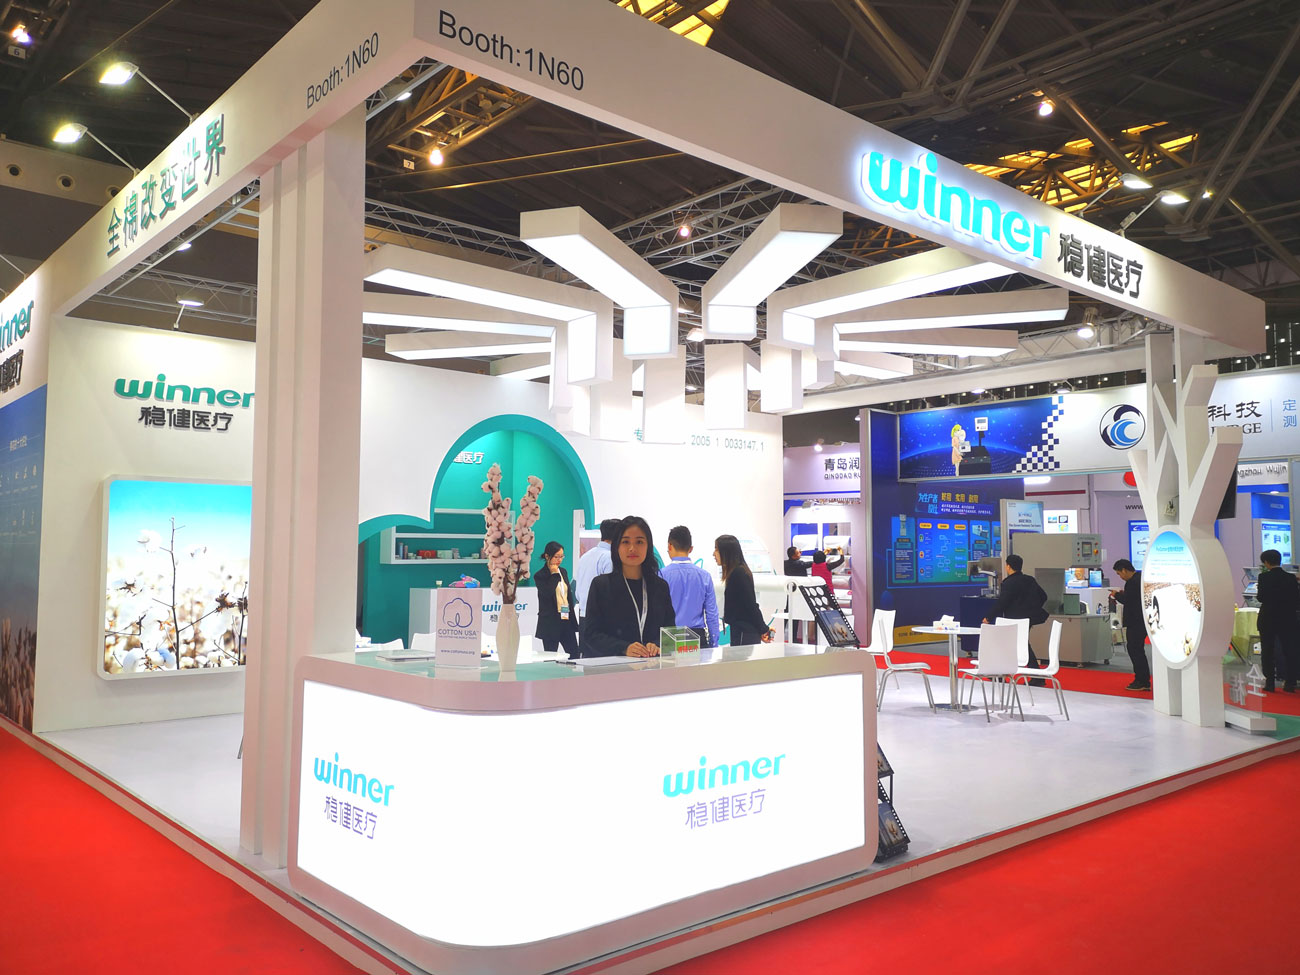 Straight Hit Since Exhibition • Winner's 100% Cotton Spunlace Nonwoven Fabric Products Are Highly Acclaimed